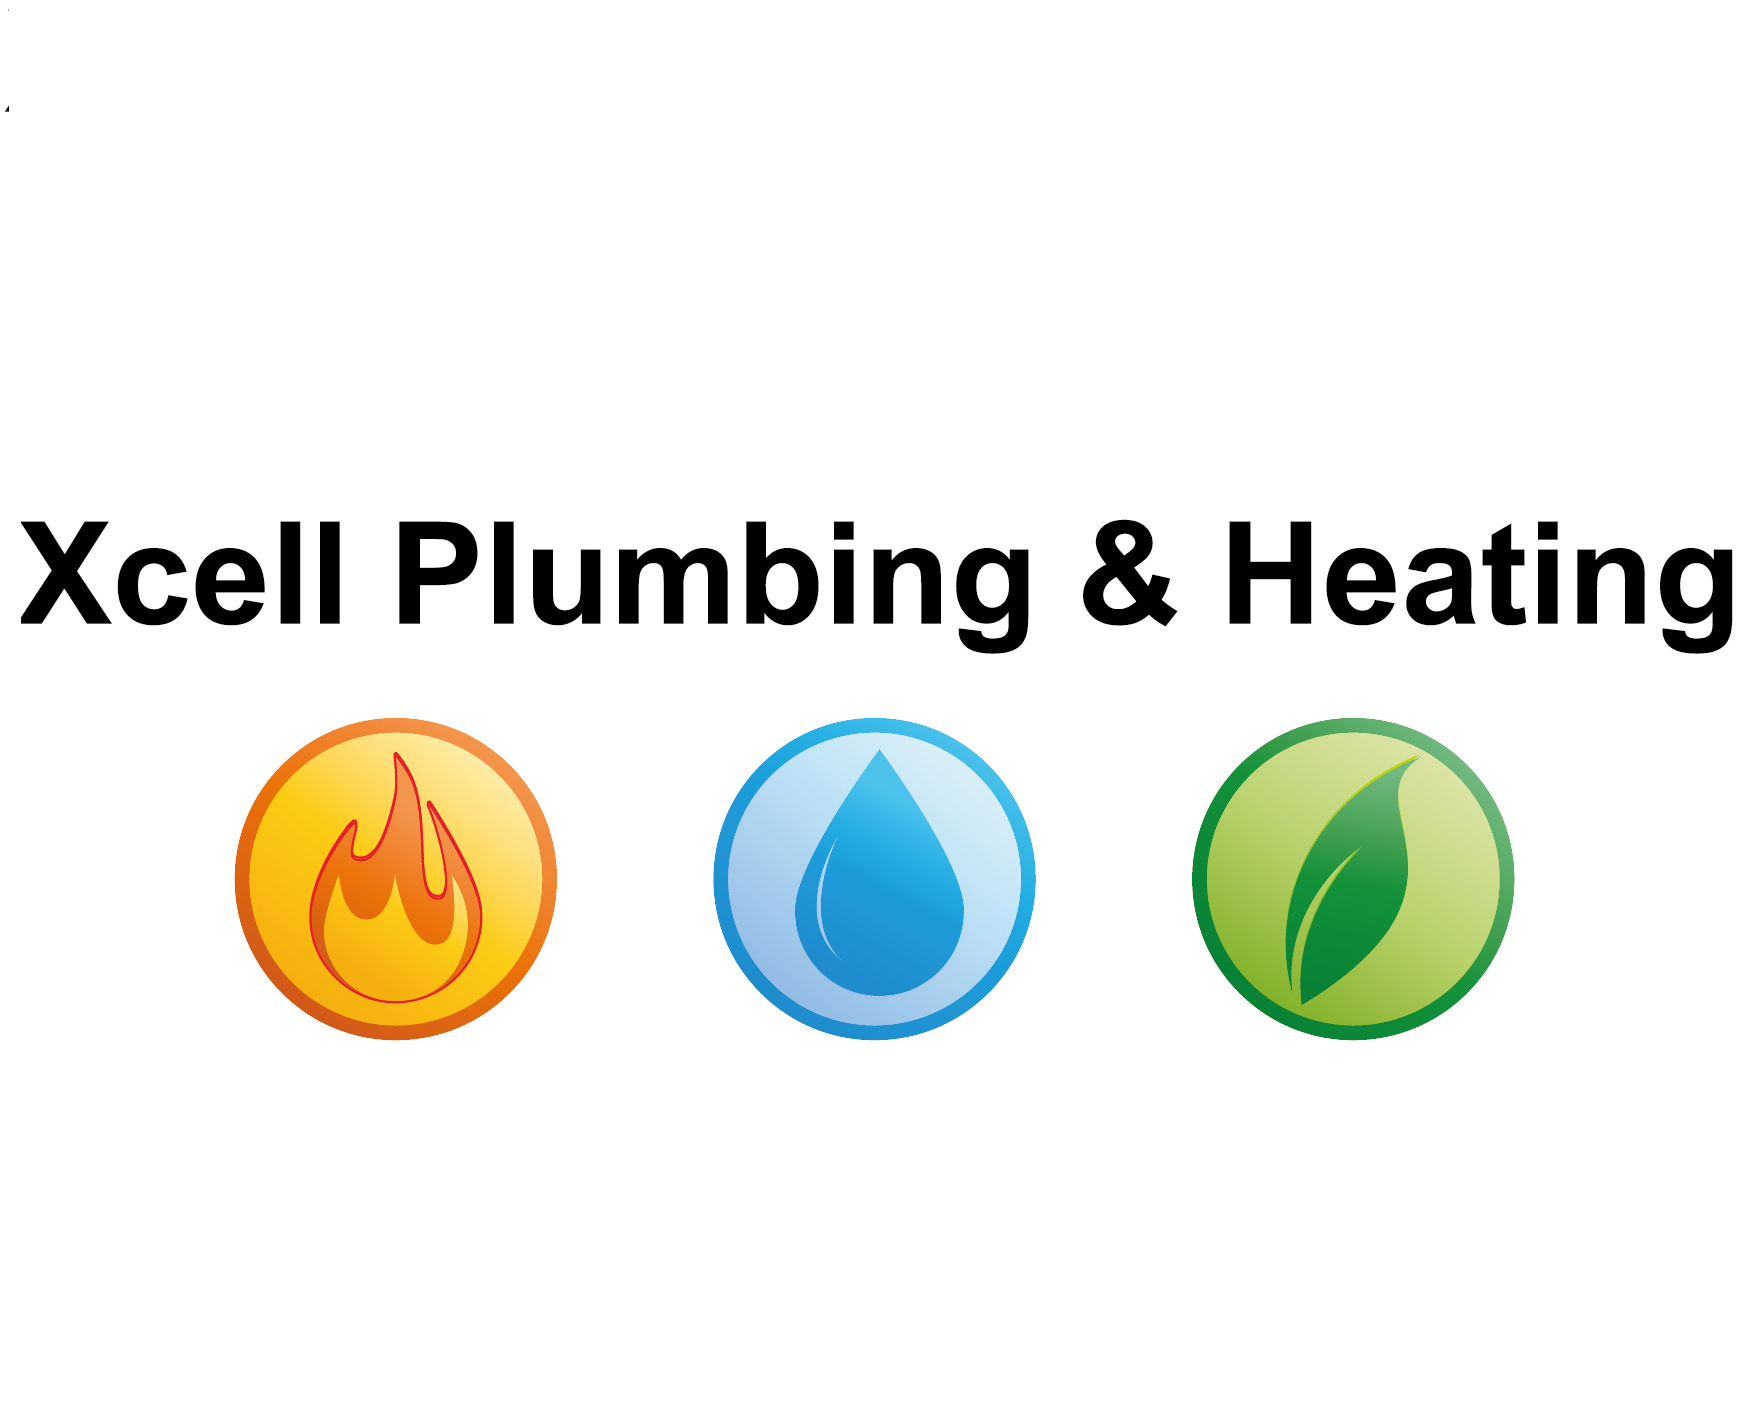 Xcell Plumbing and Heating